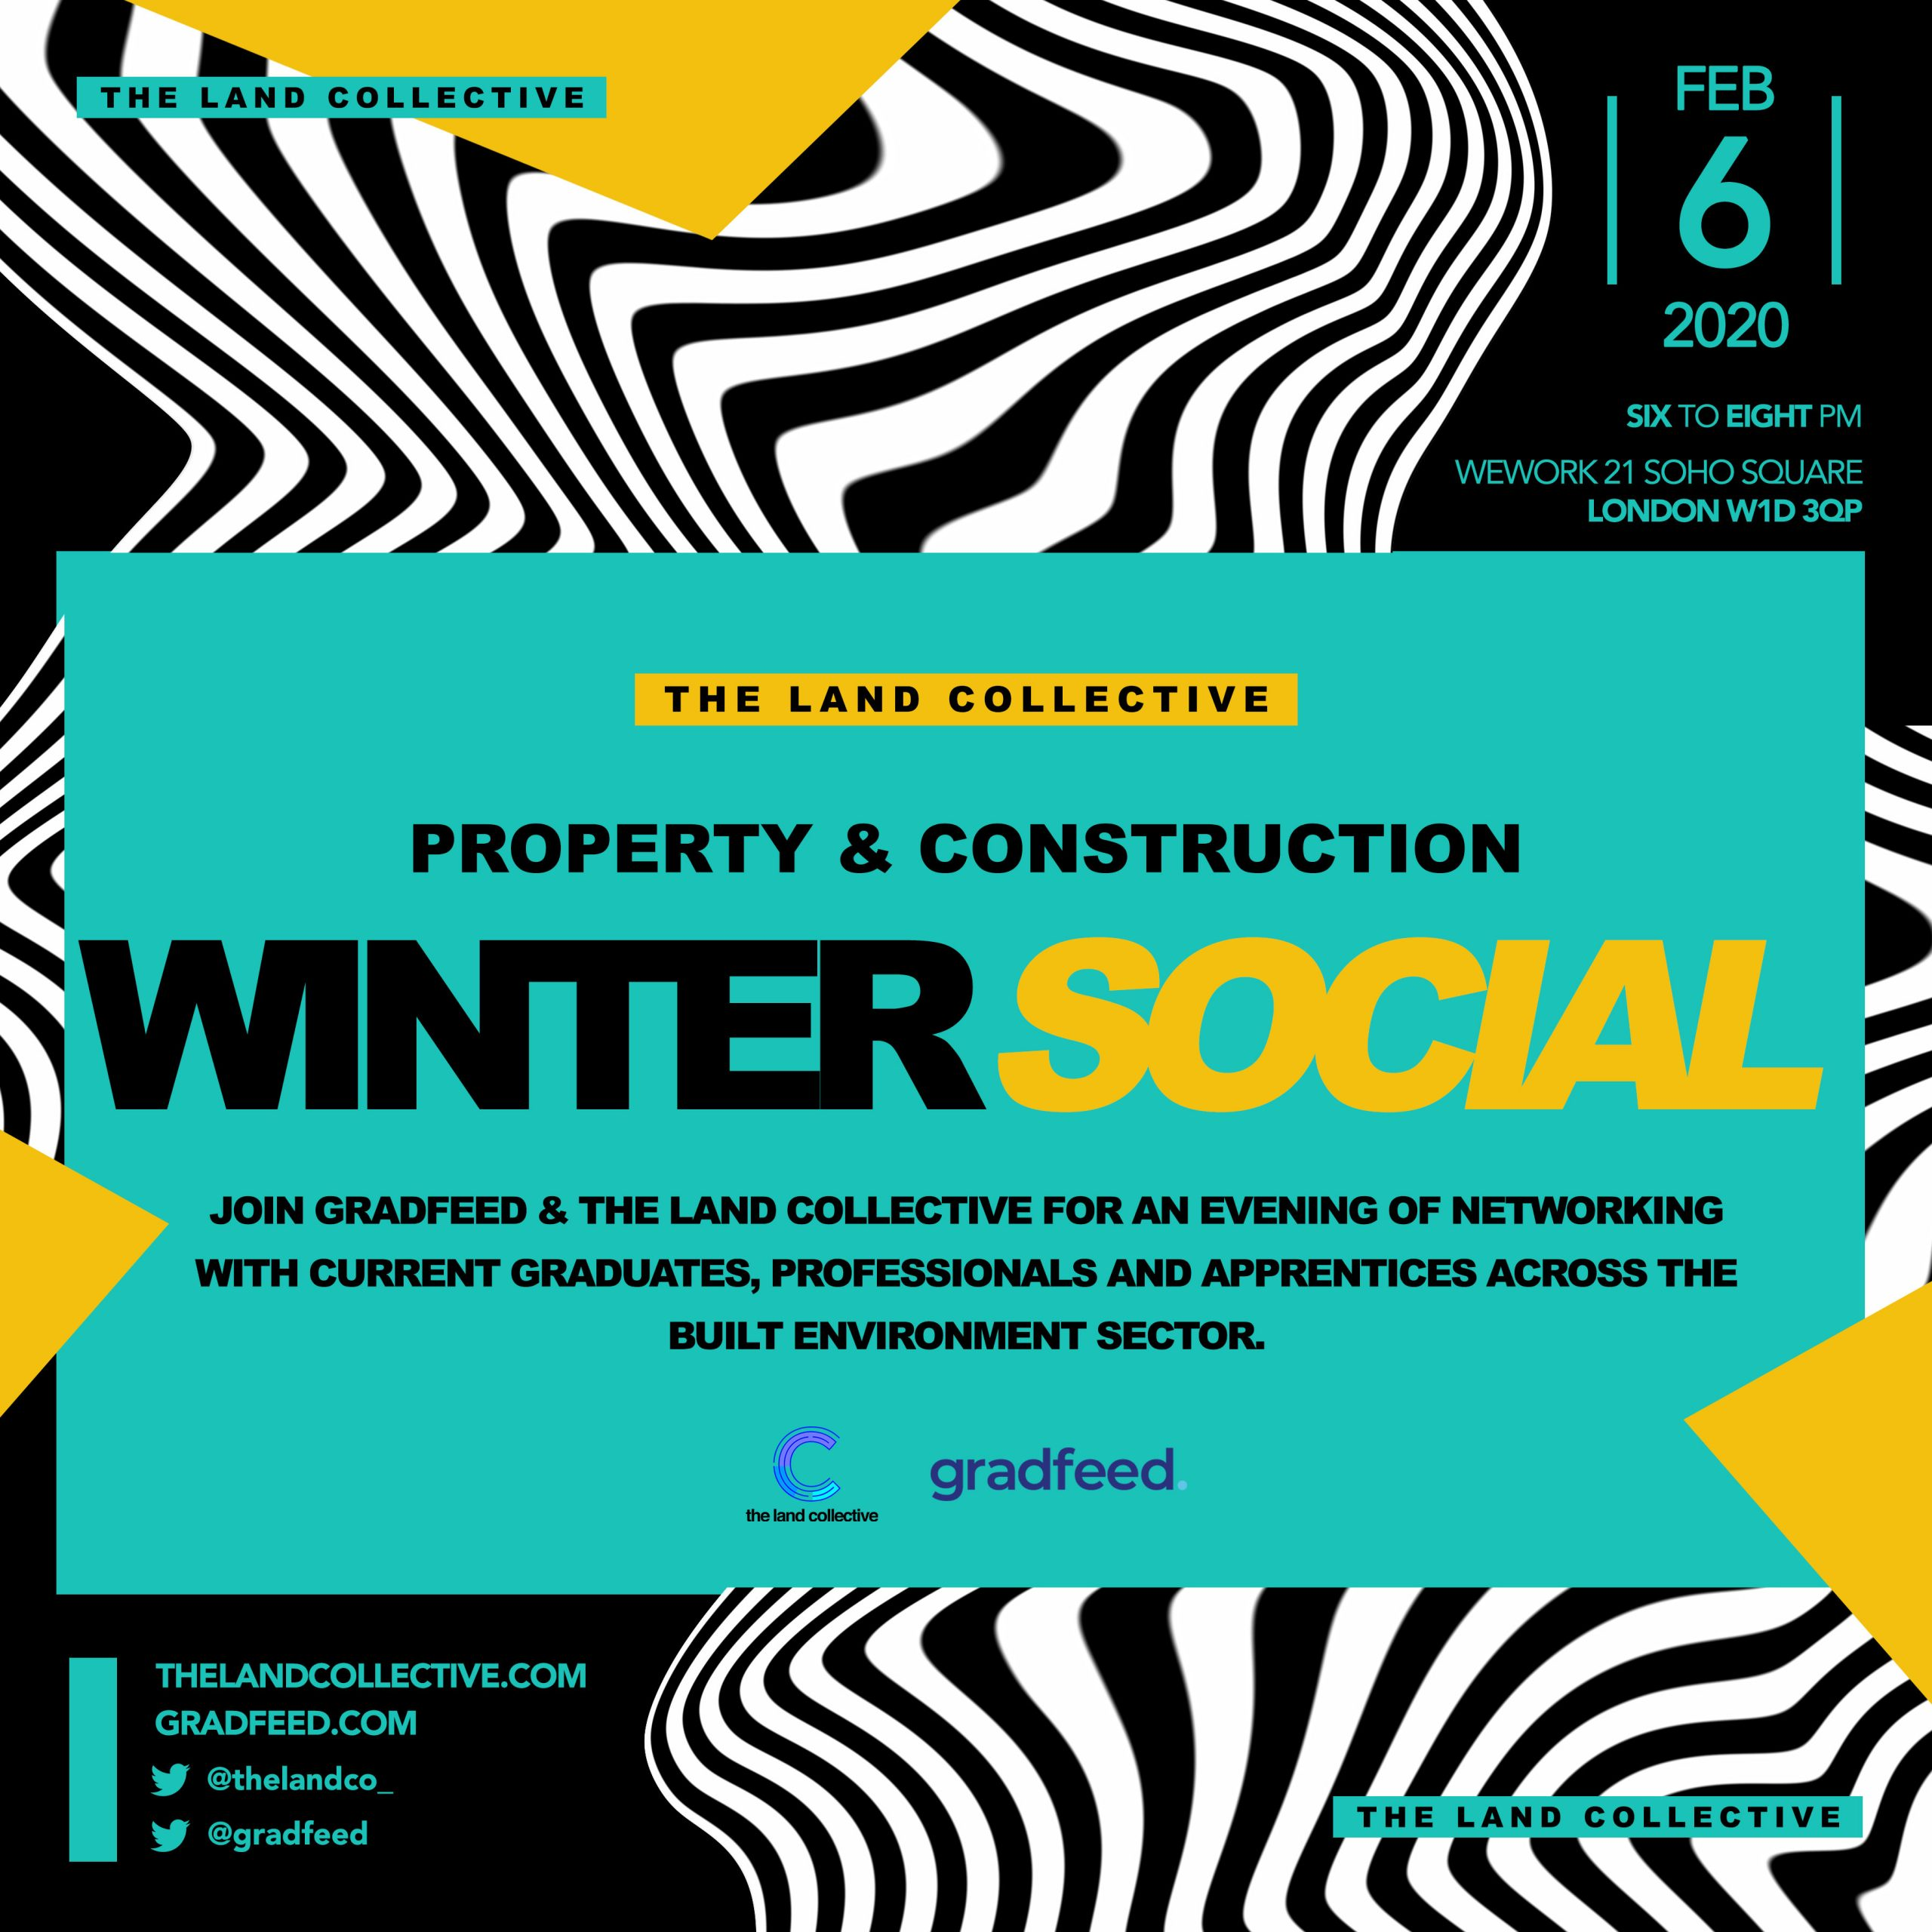 The Land Collective Winter Social